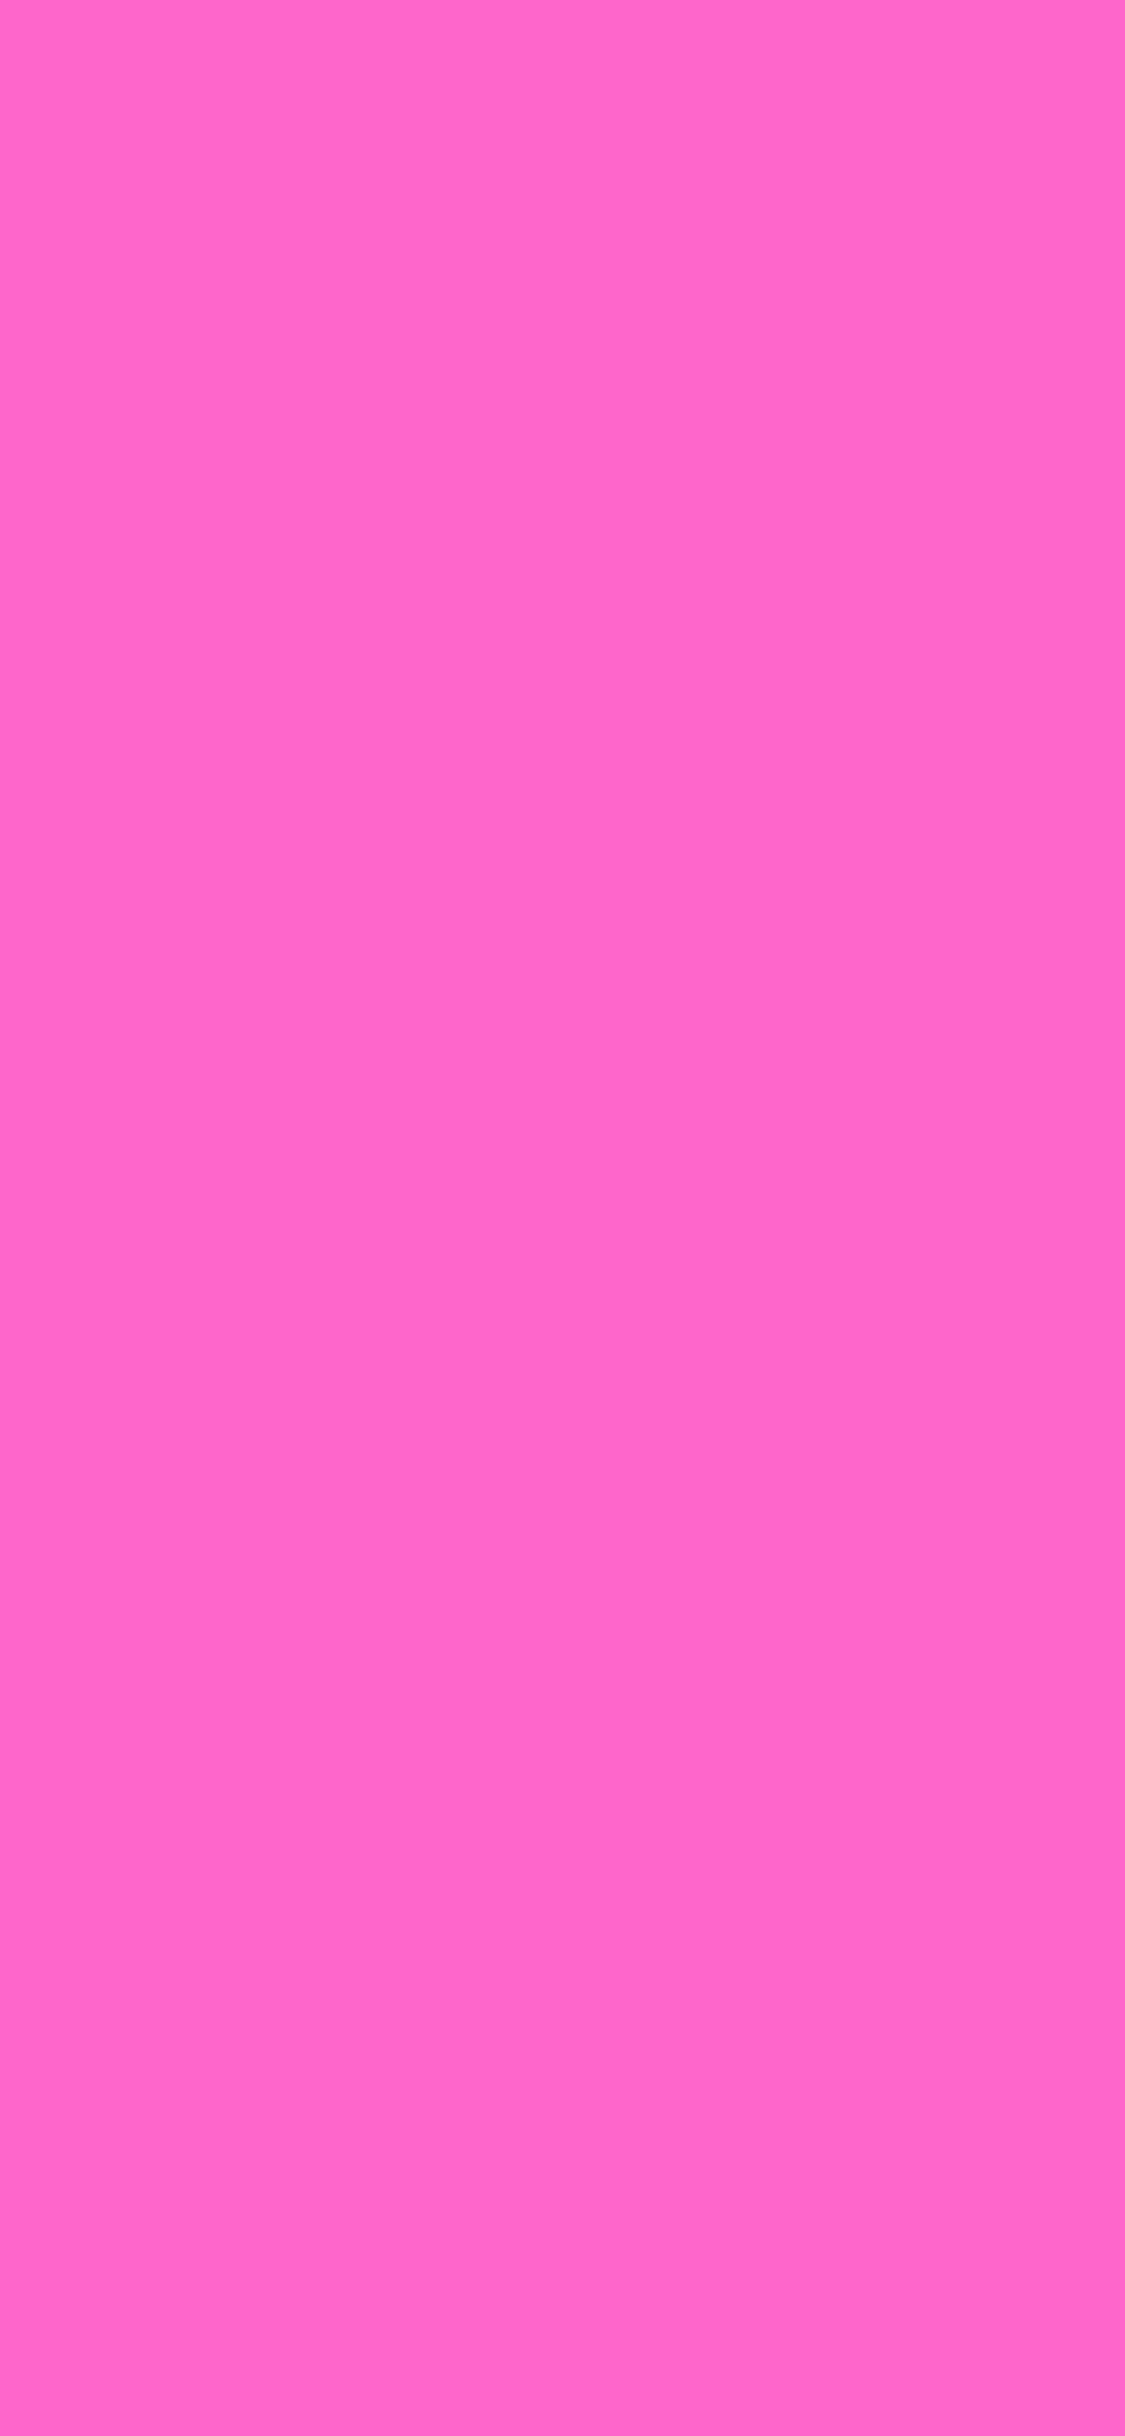 1125x2436 Rose Pink Solid Color Background